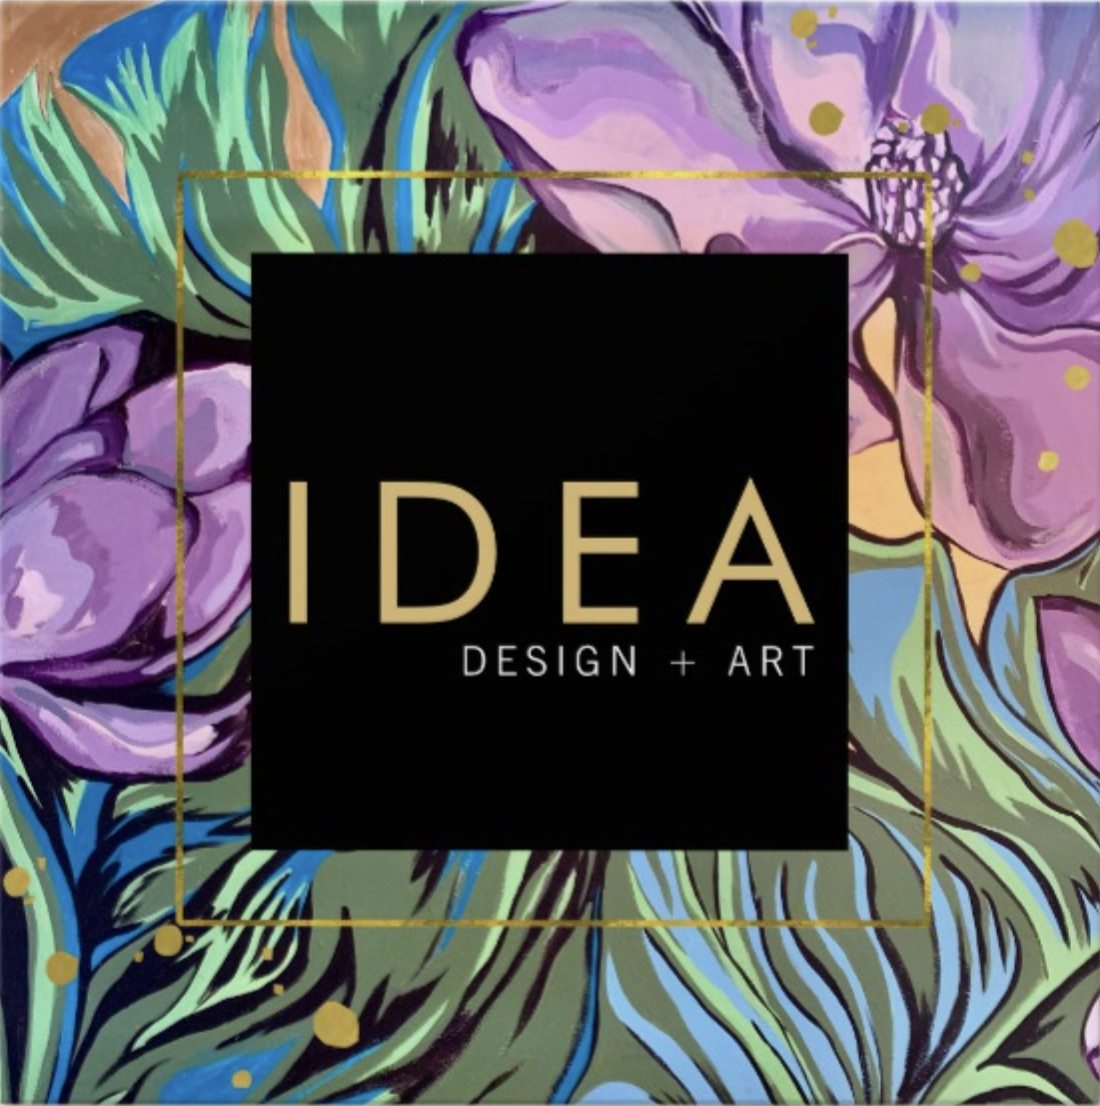 IDEA DESIGN and Art